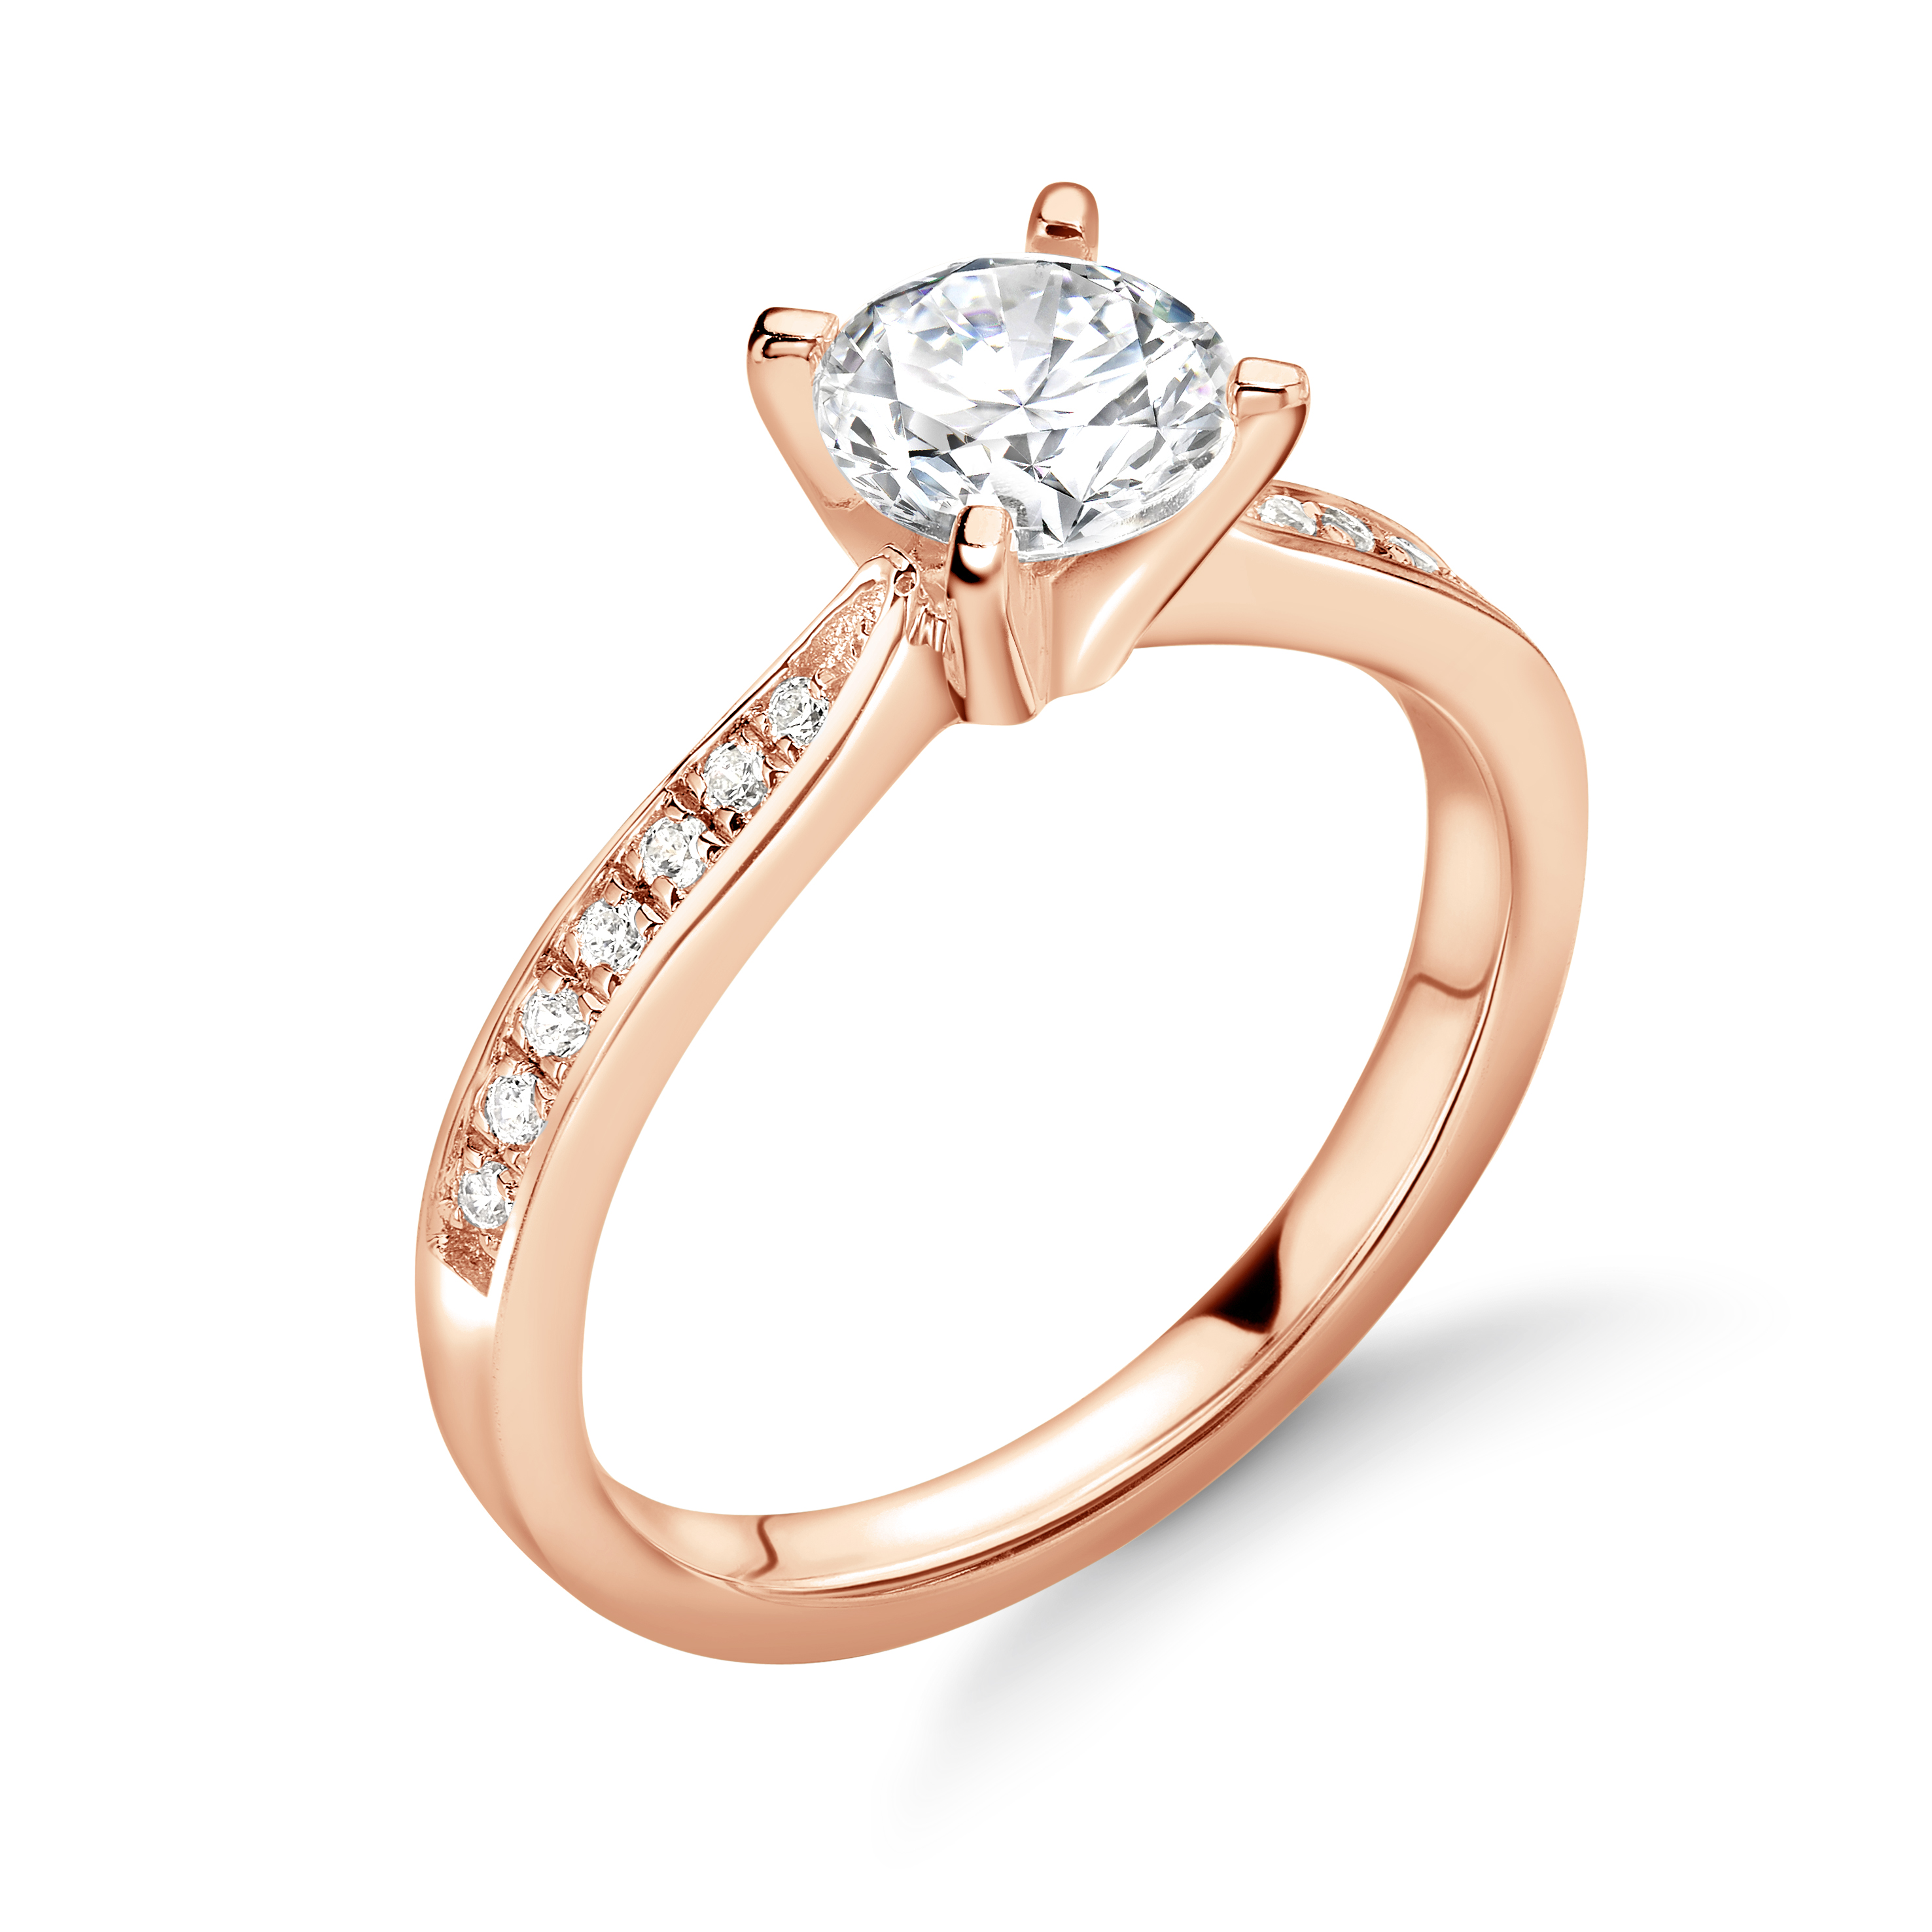 Delicate Tappering Down Pave Set Side Stone Diamond Engagement Rings